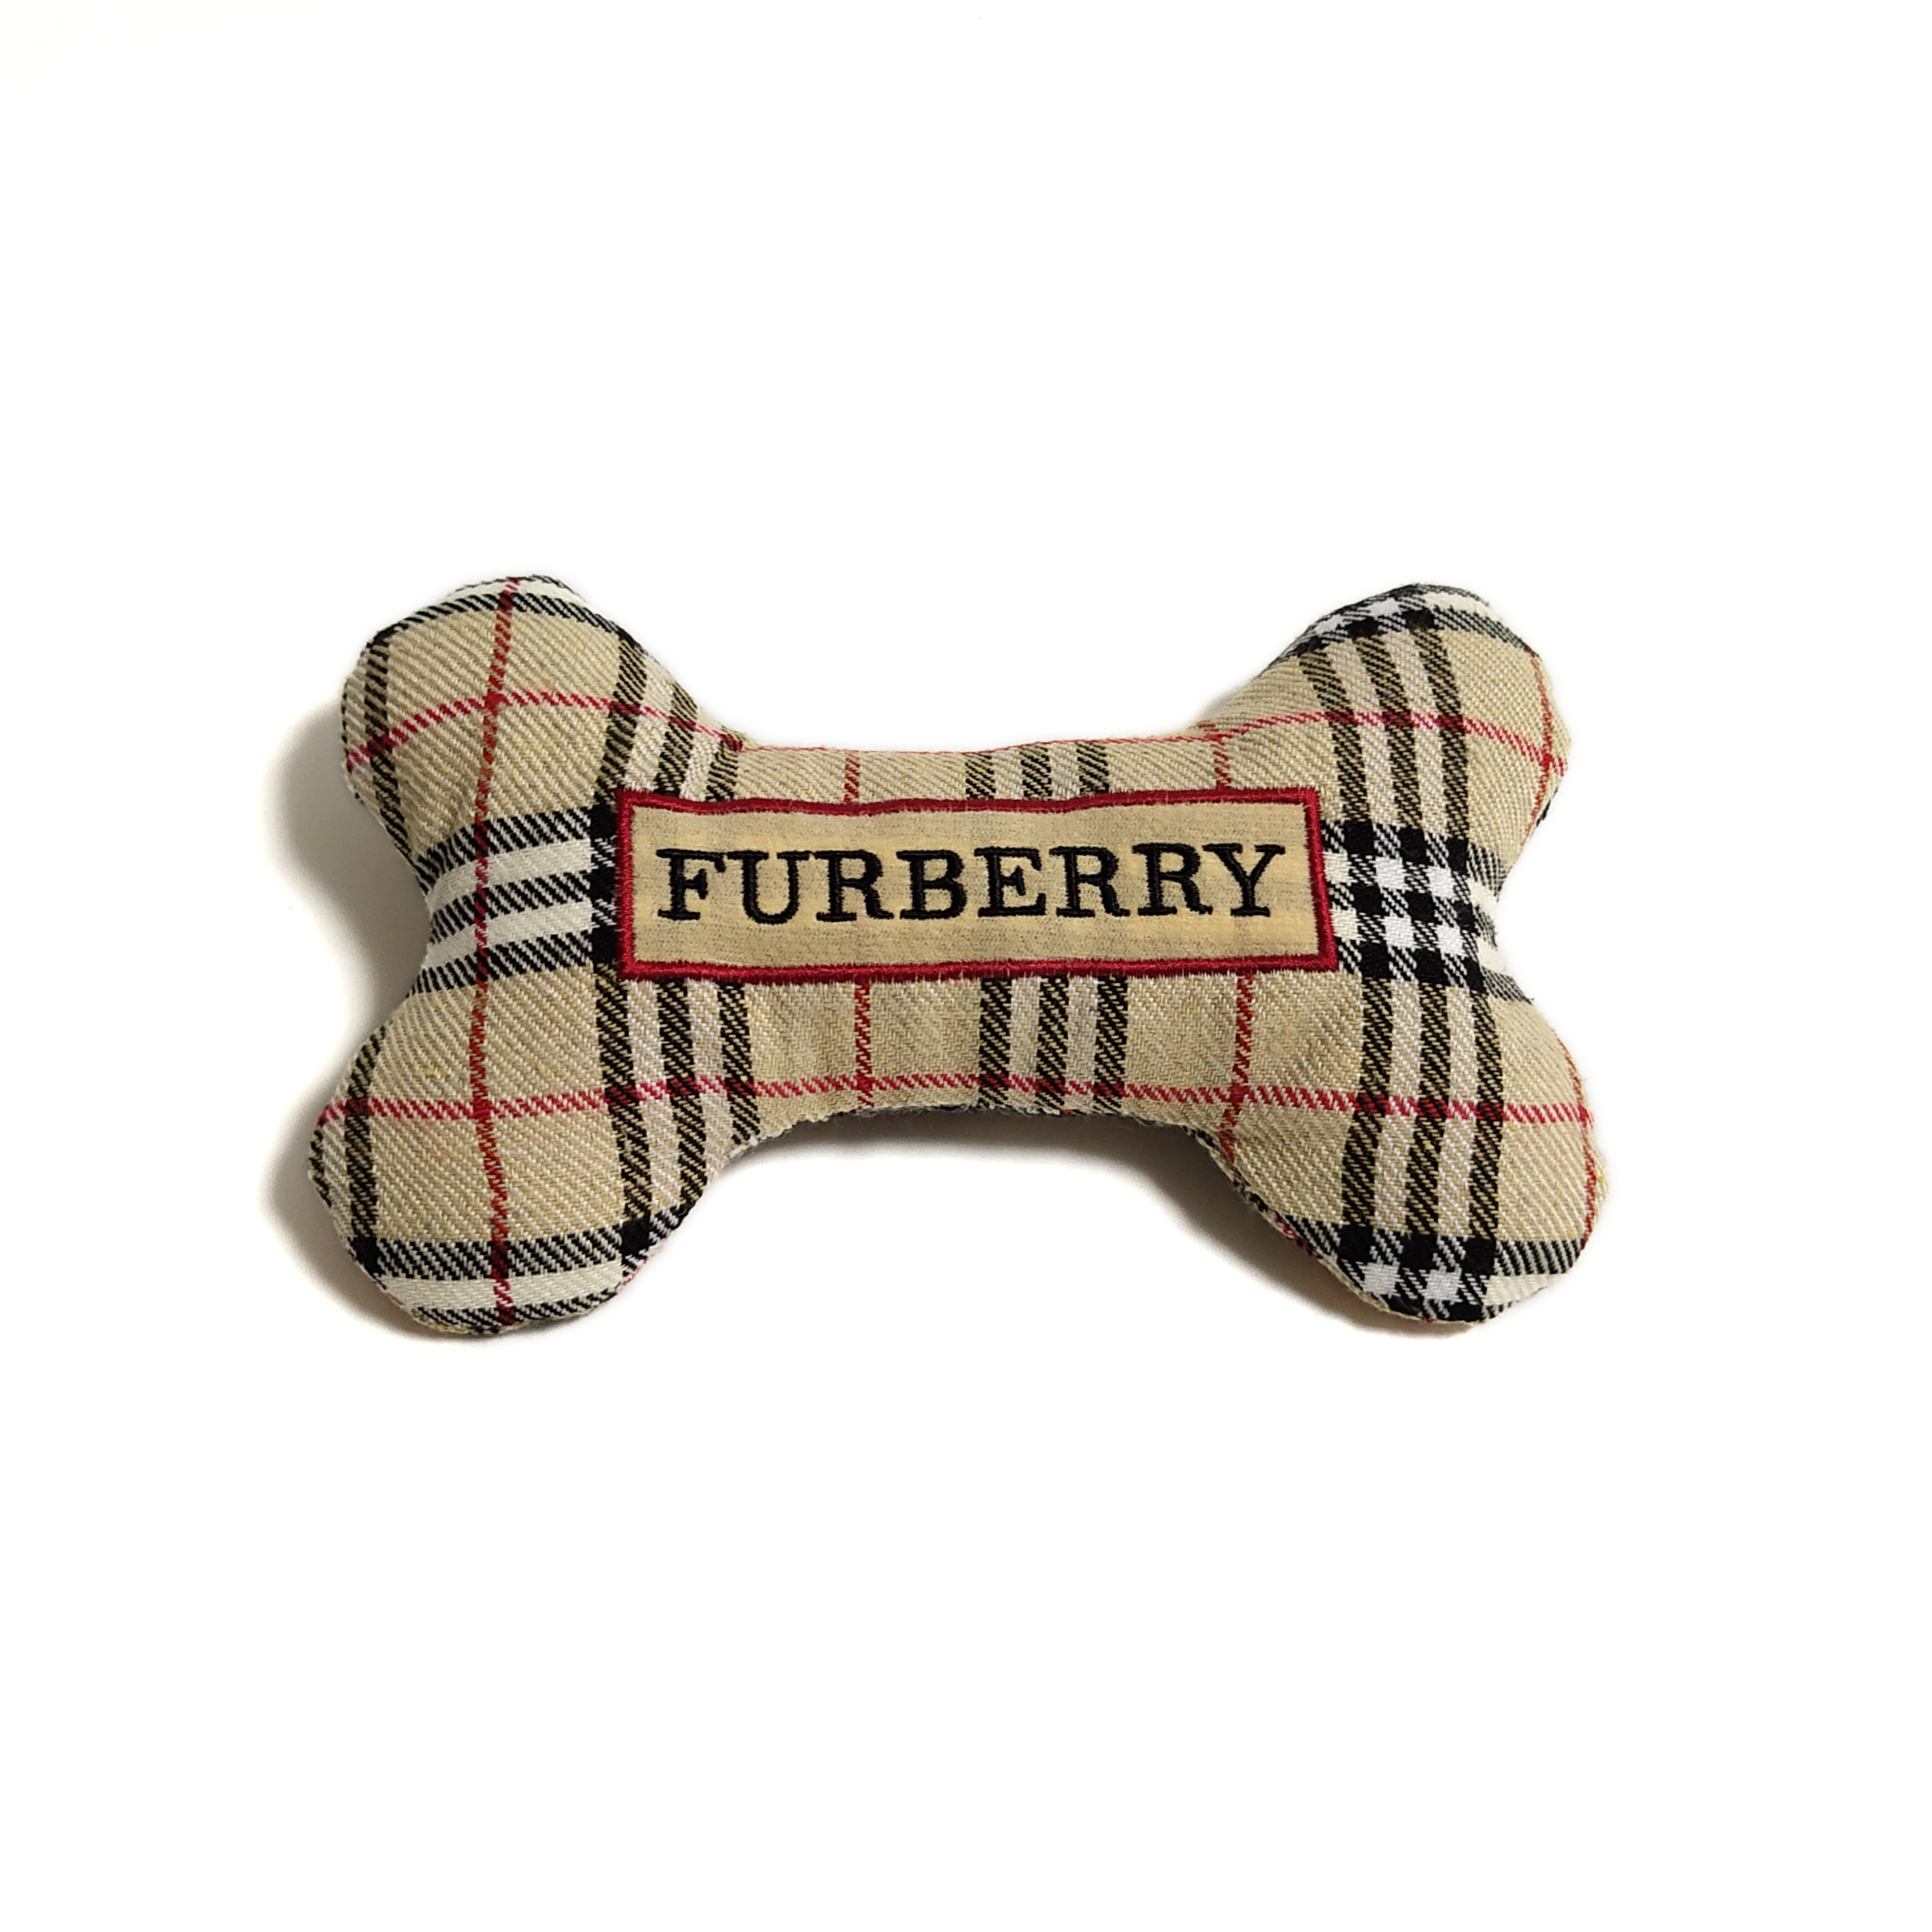 Furberry bone